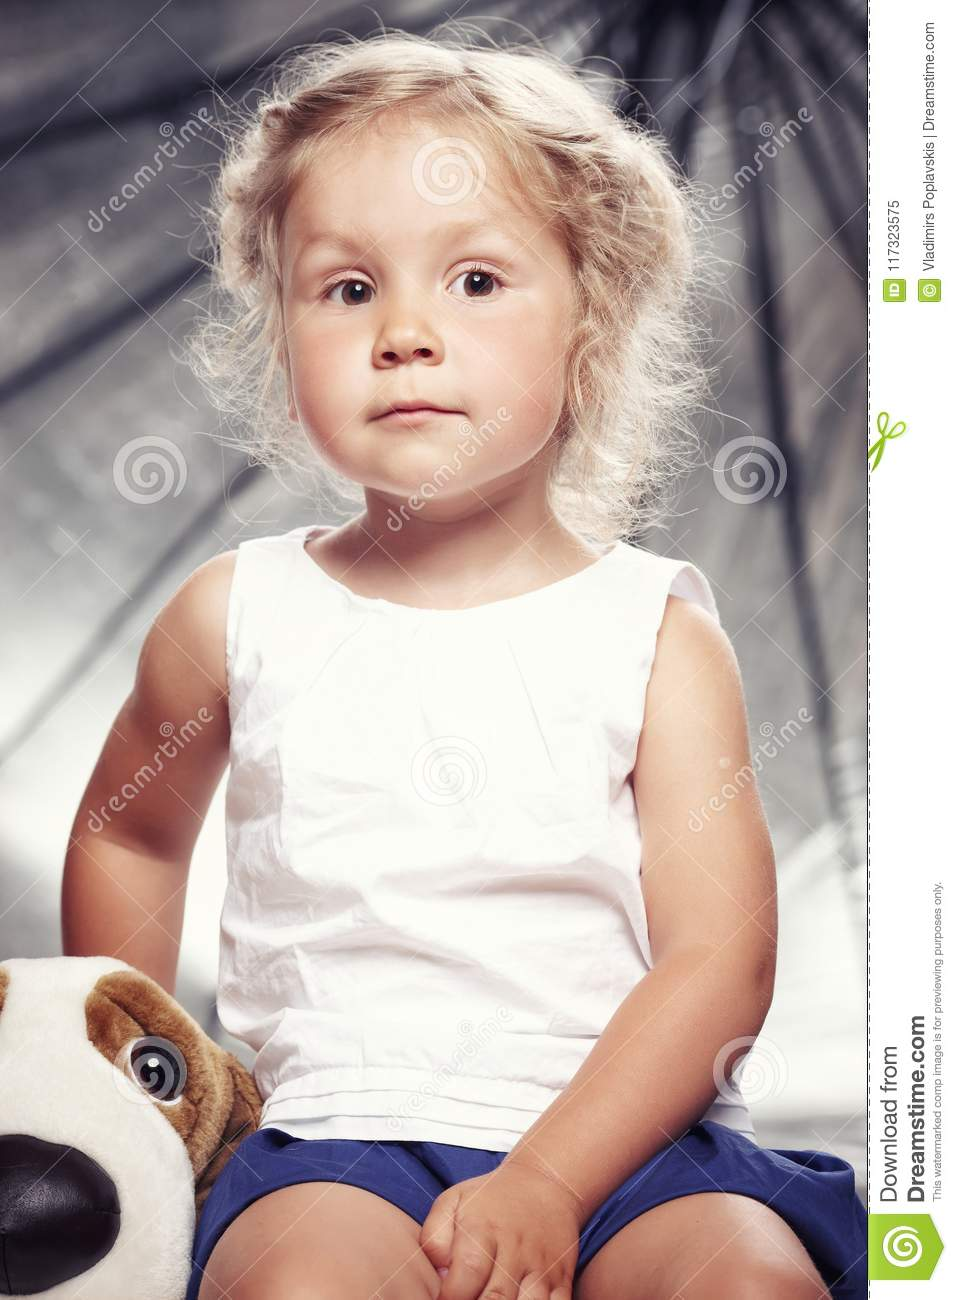 Download Portrait Of A Cute Little Girl In Casual Dress Sitting With A Plush Toy In Studio. Stock Image - Image of cute, clean: 117323575